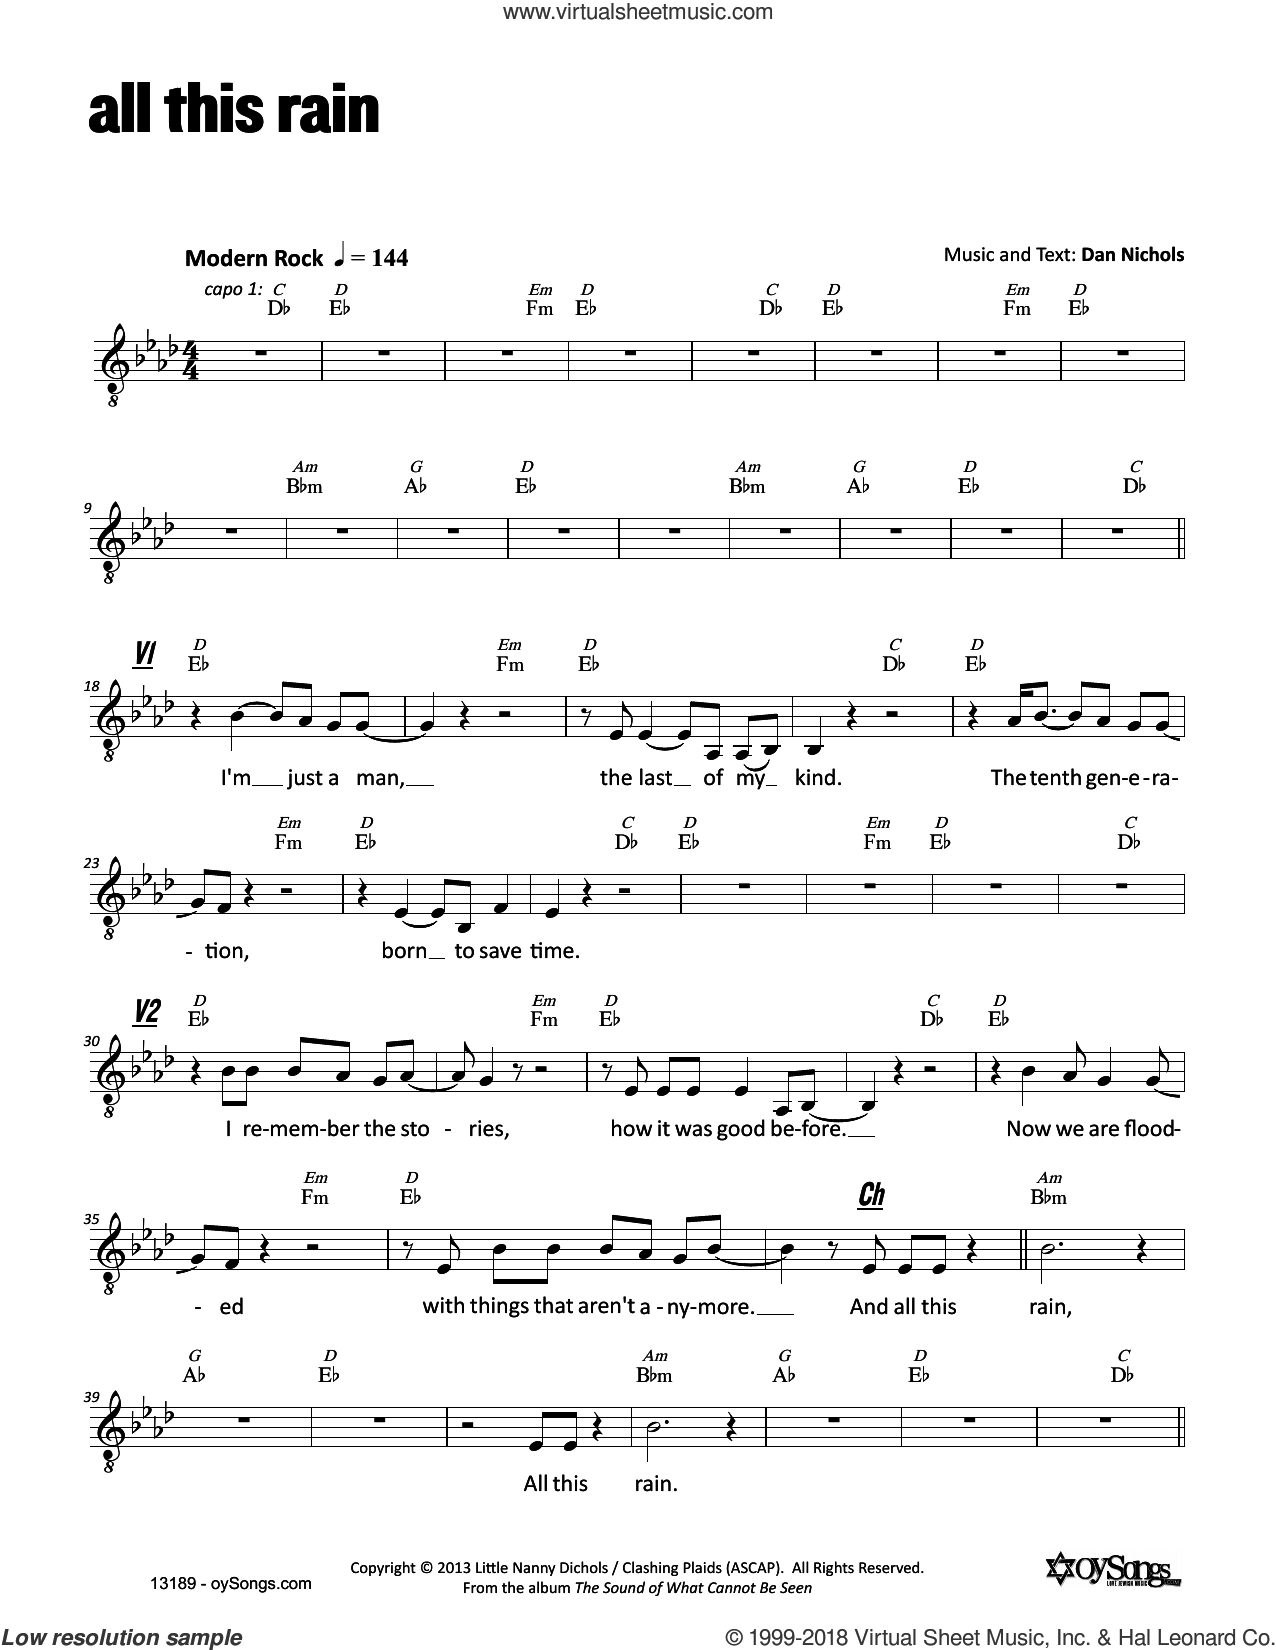 All This Rain sheet music for voice and other instruments (fake book) by Dan Nichols, intermediate skill level